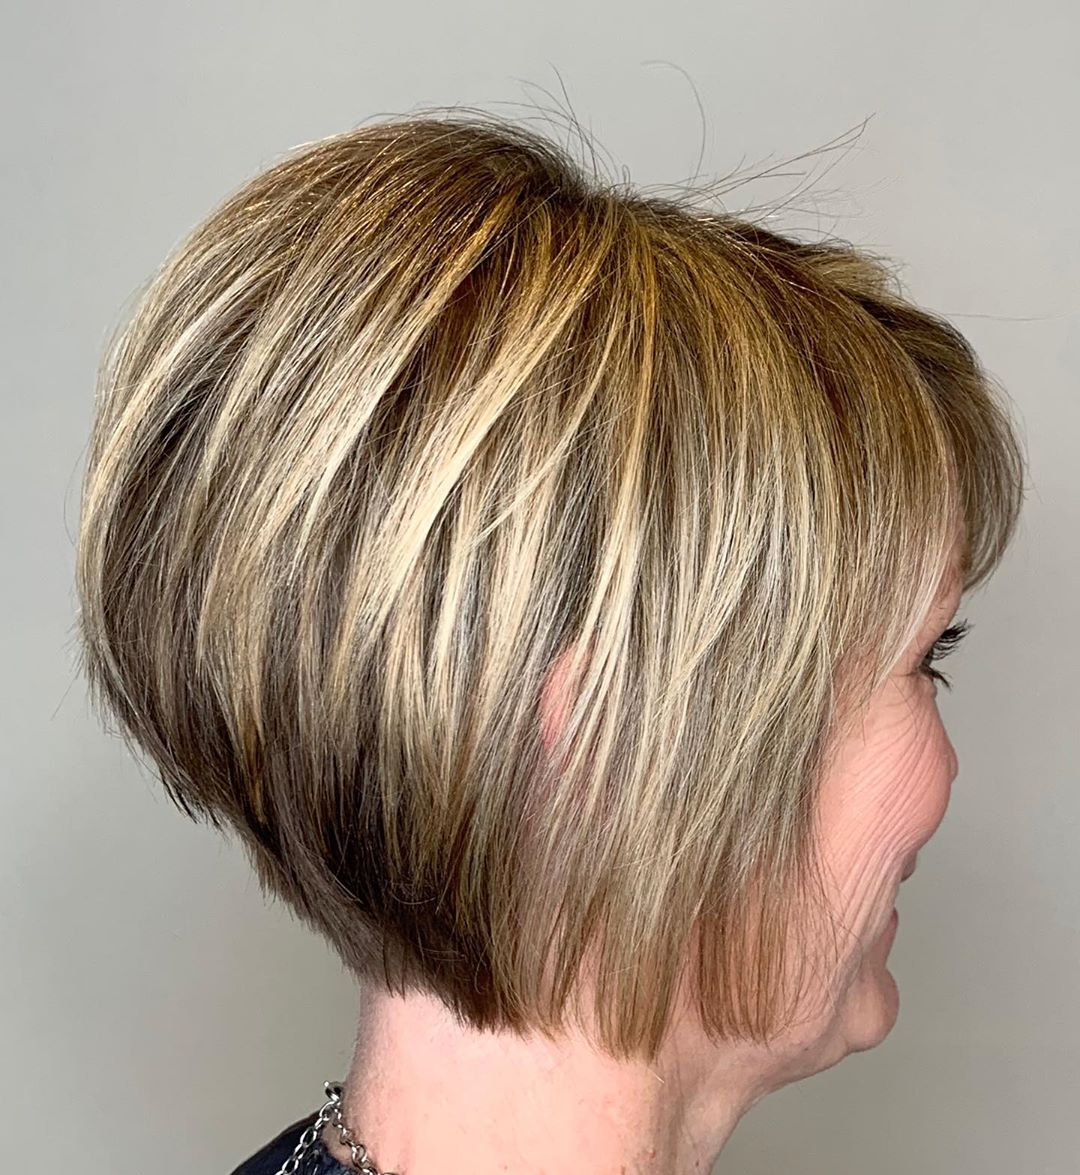 27 Chic Short Hairstyles for Women Over 50 with Fine Hair